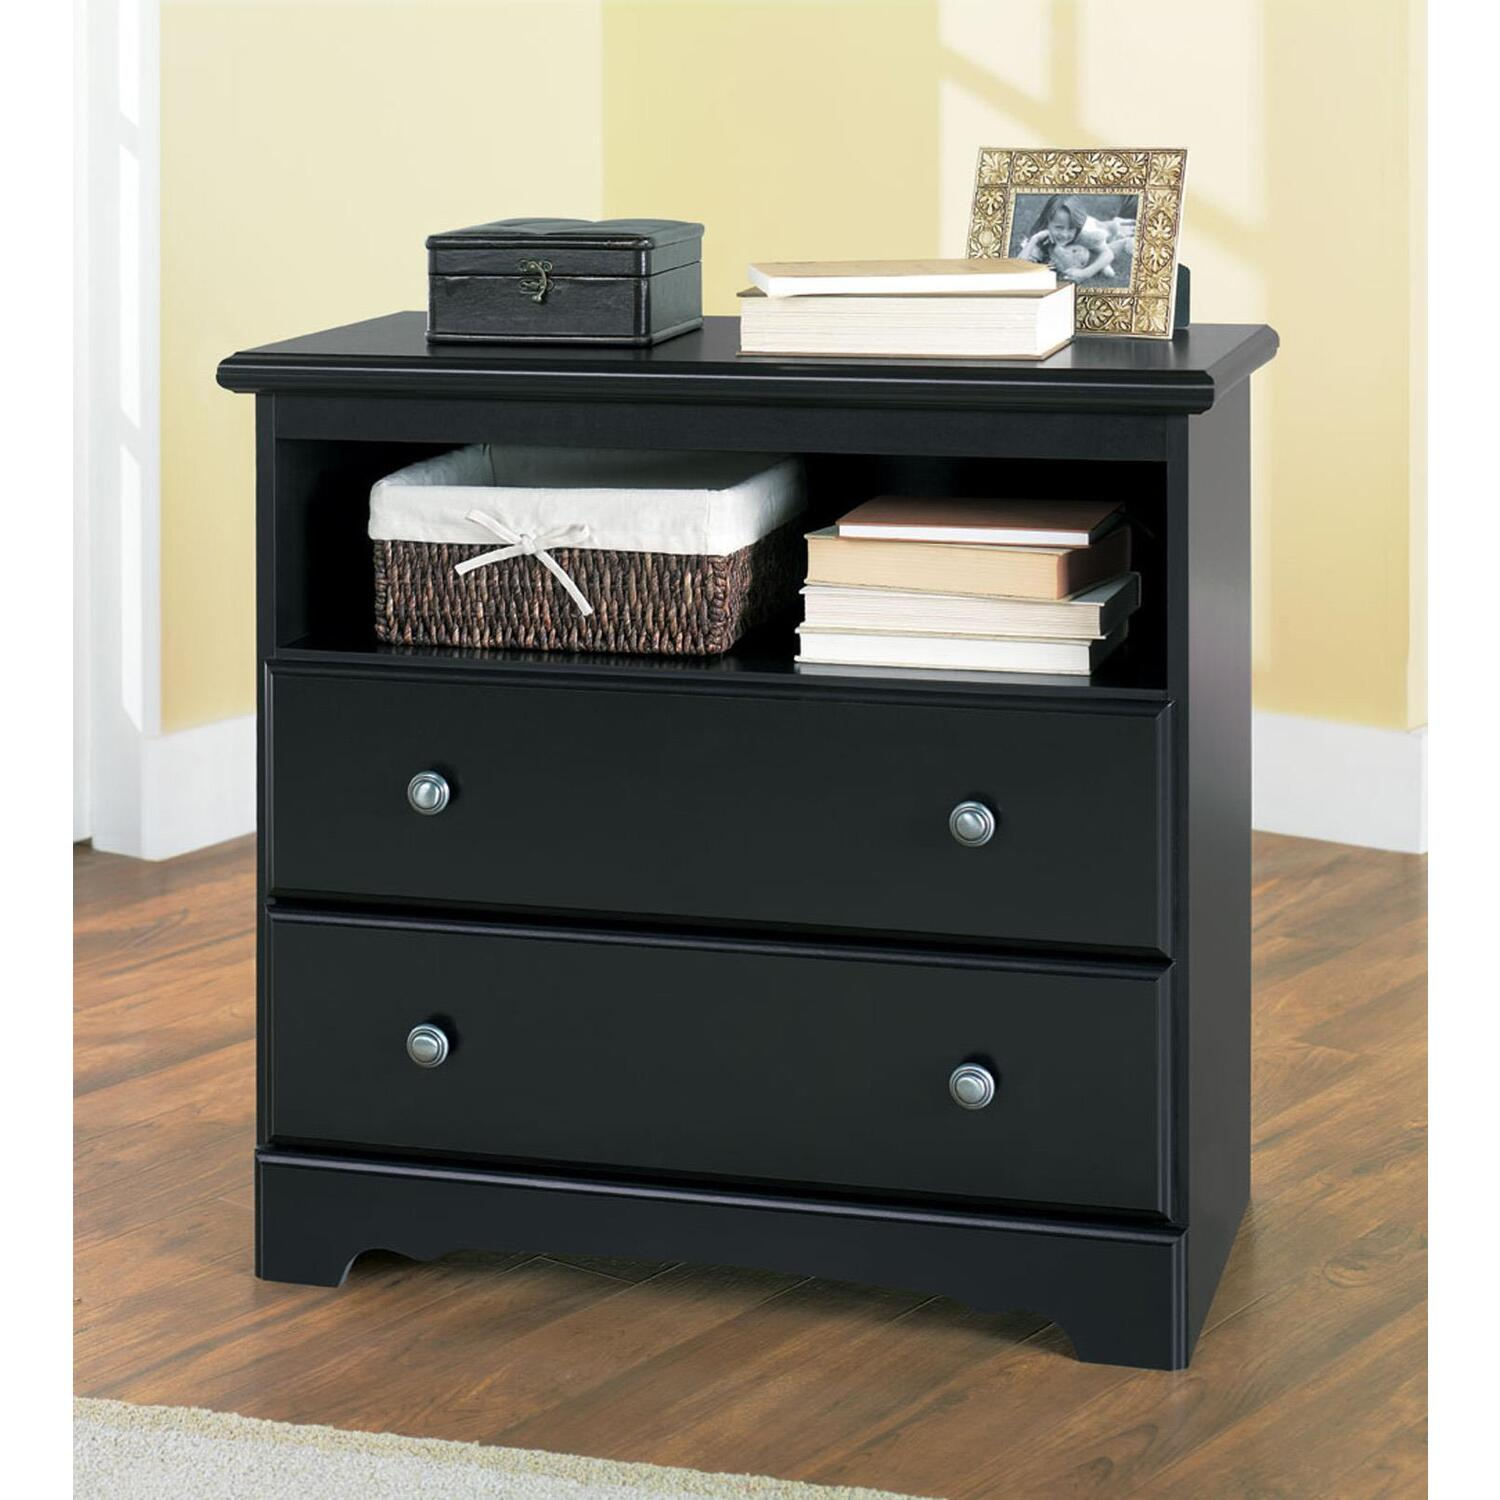 Lane furniture drawer hall chest in black by oj commerce